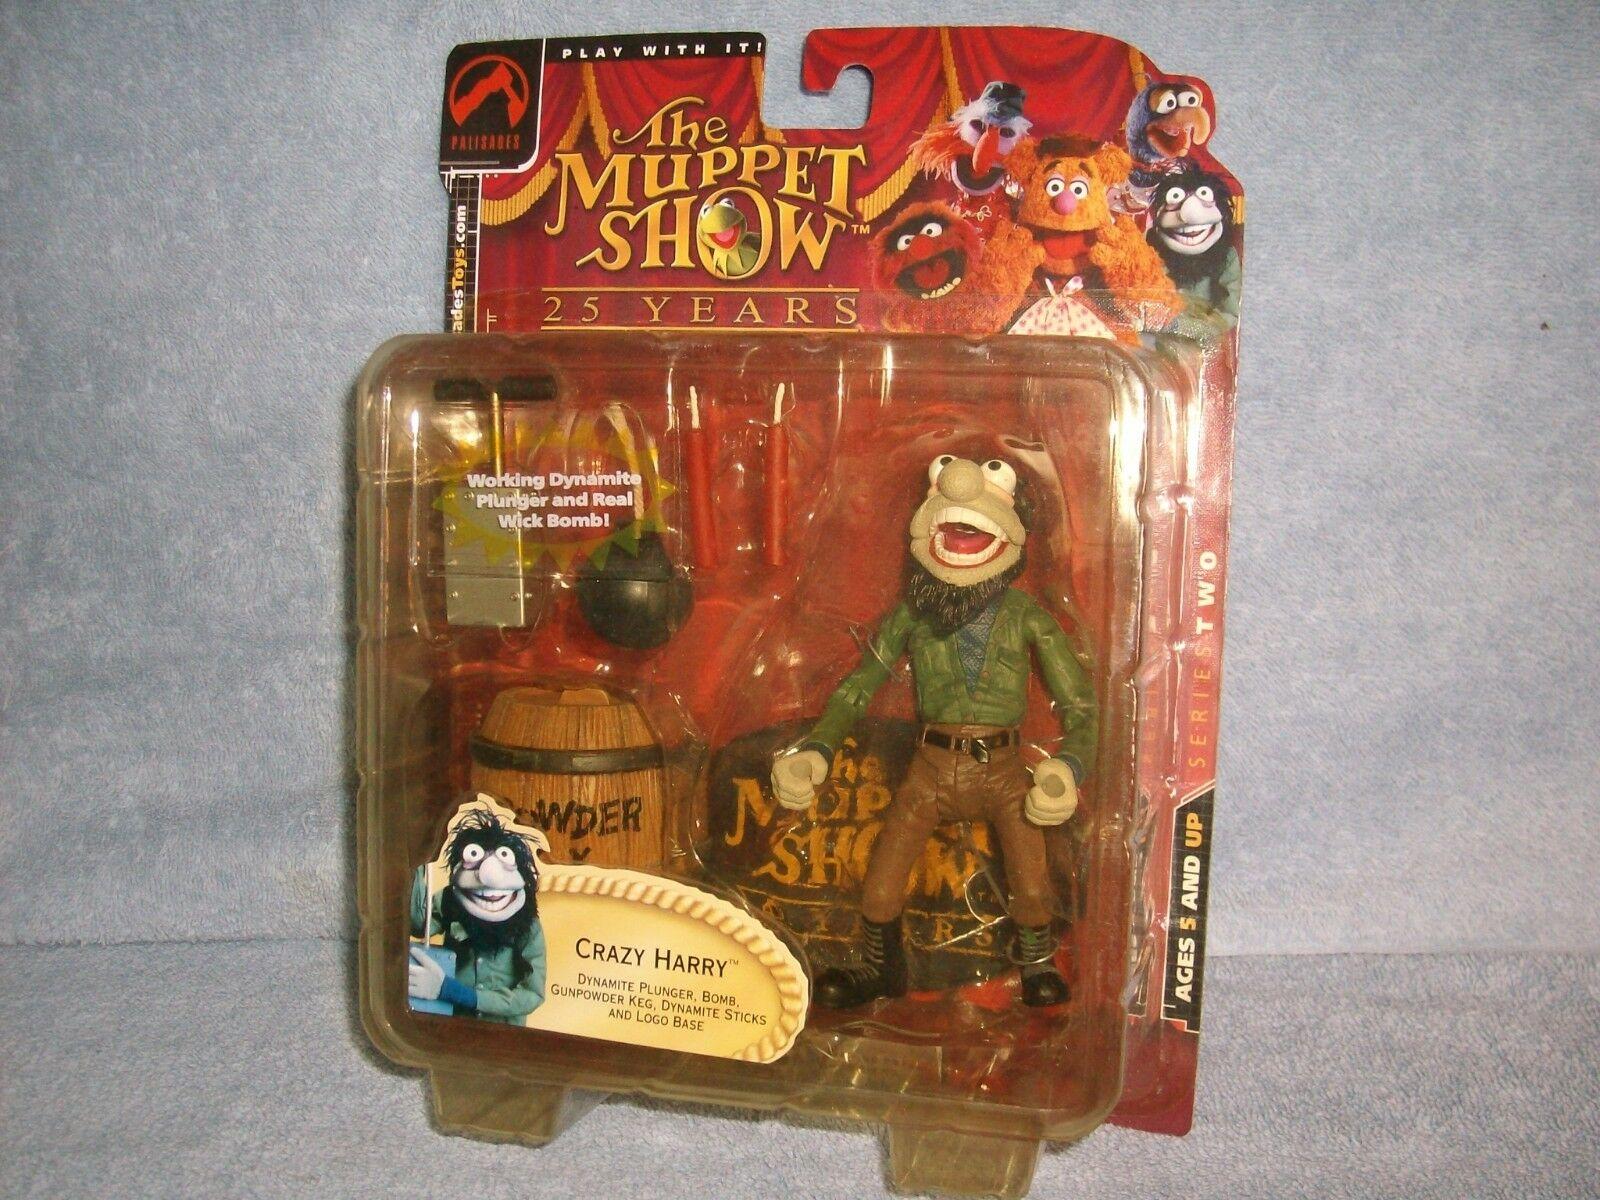 CRAZY HARRY Muppet Show 25 Years Palisades Toys 2002 series 2 Bomb Dynamite New